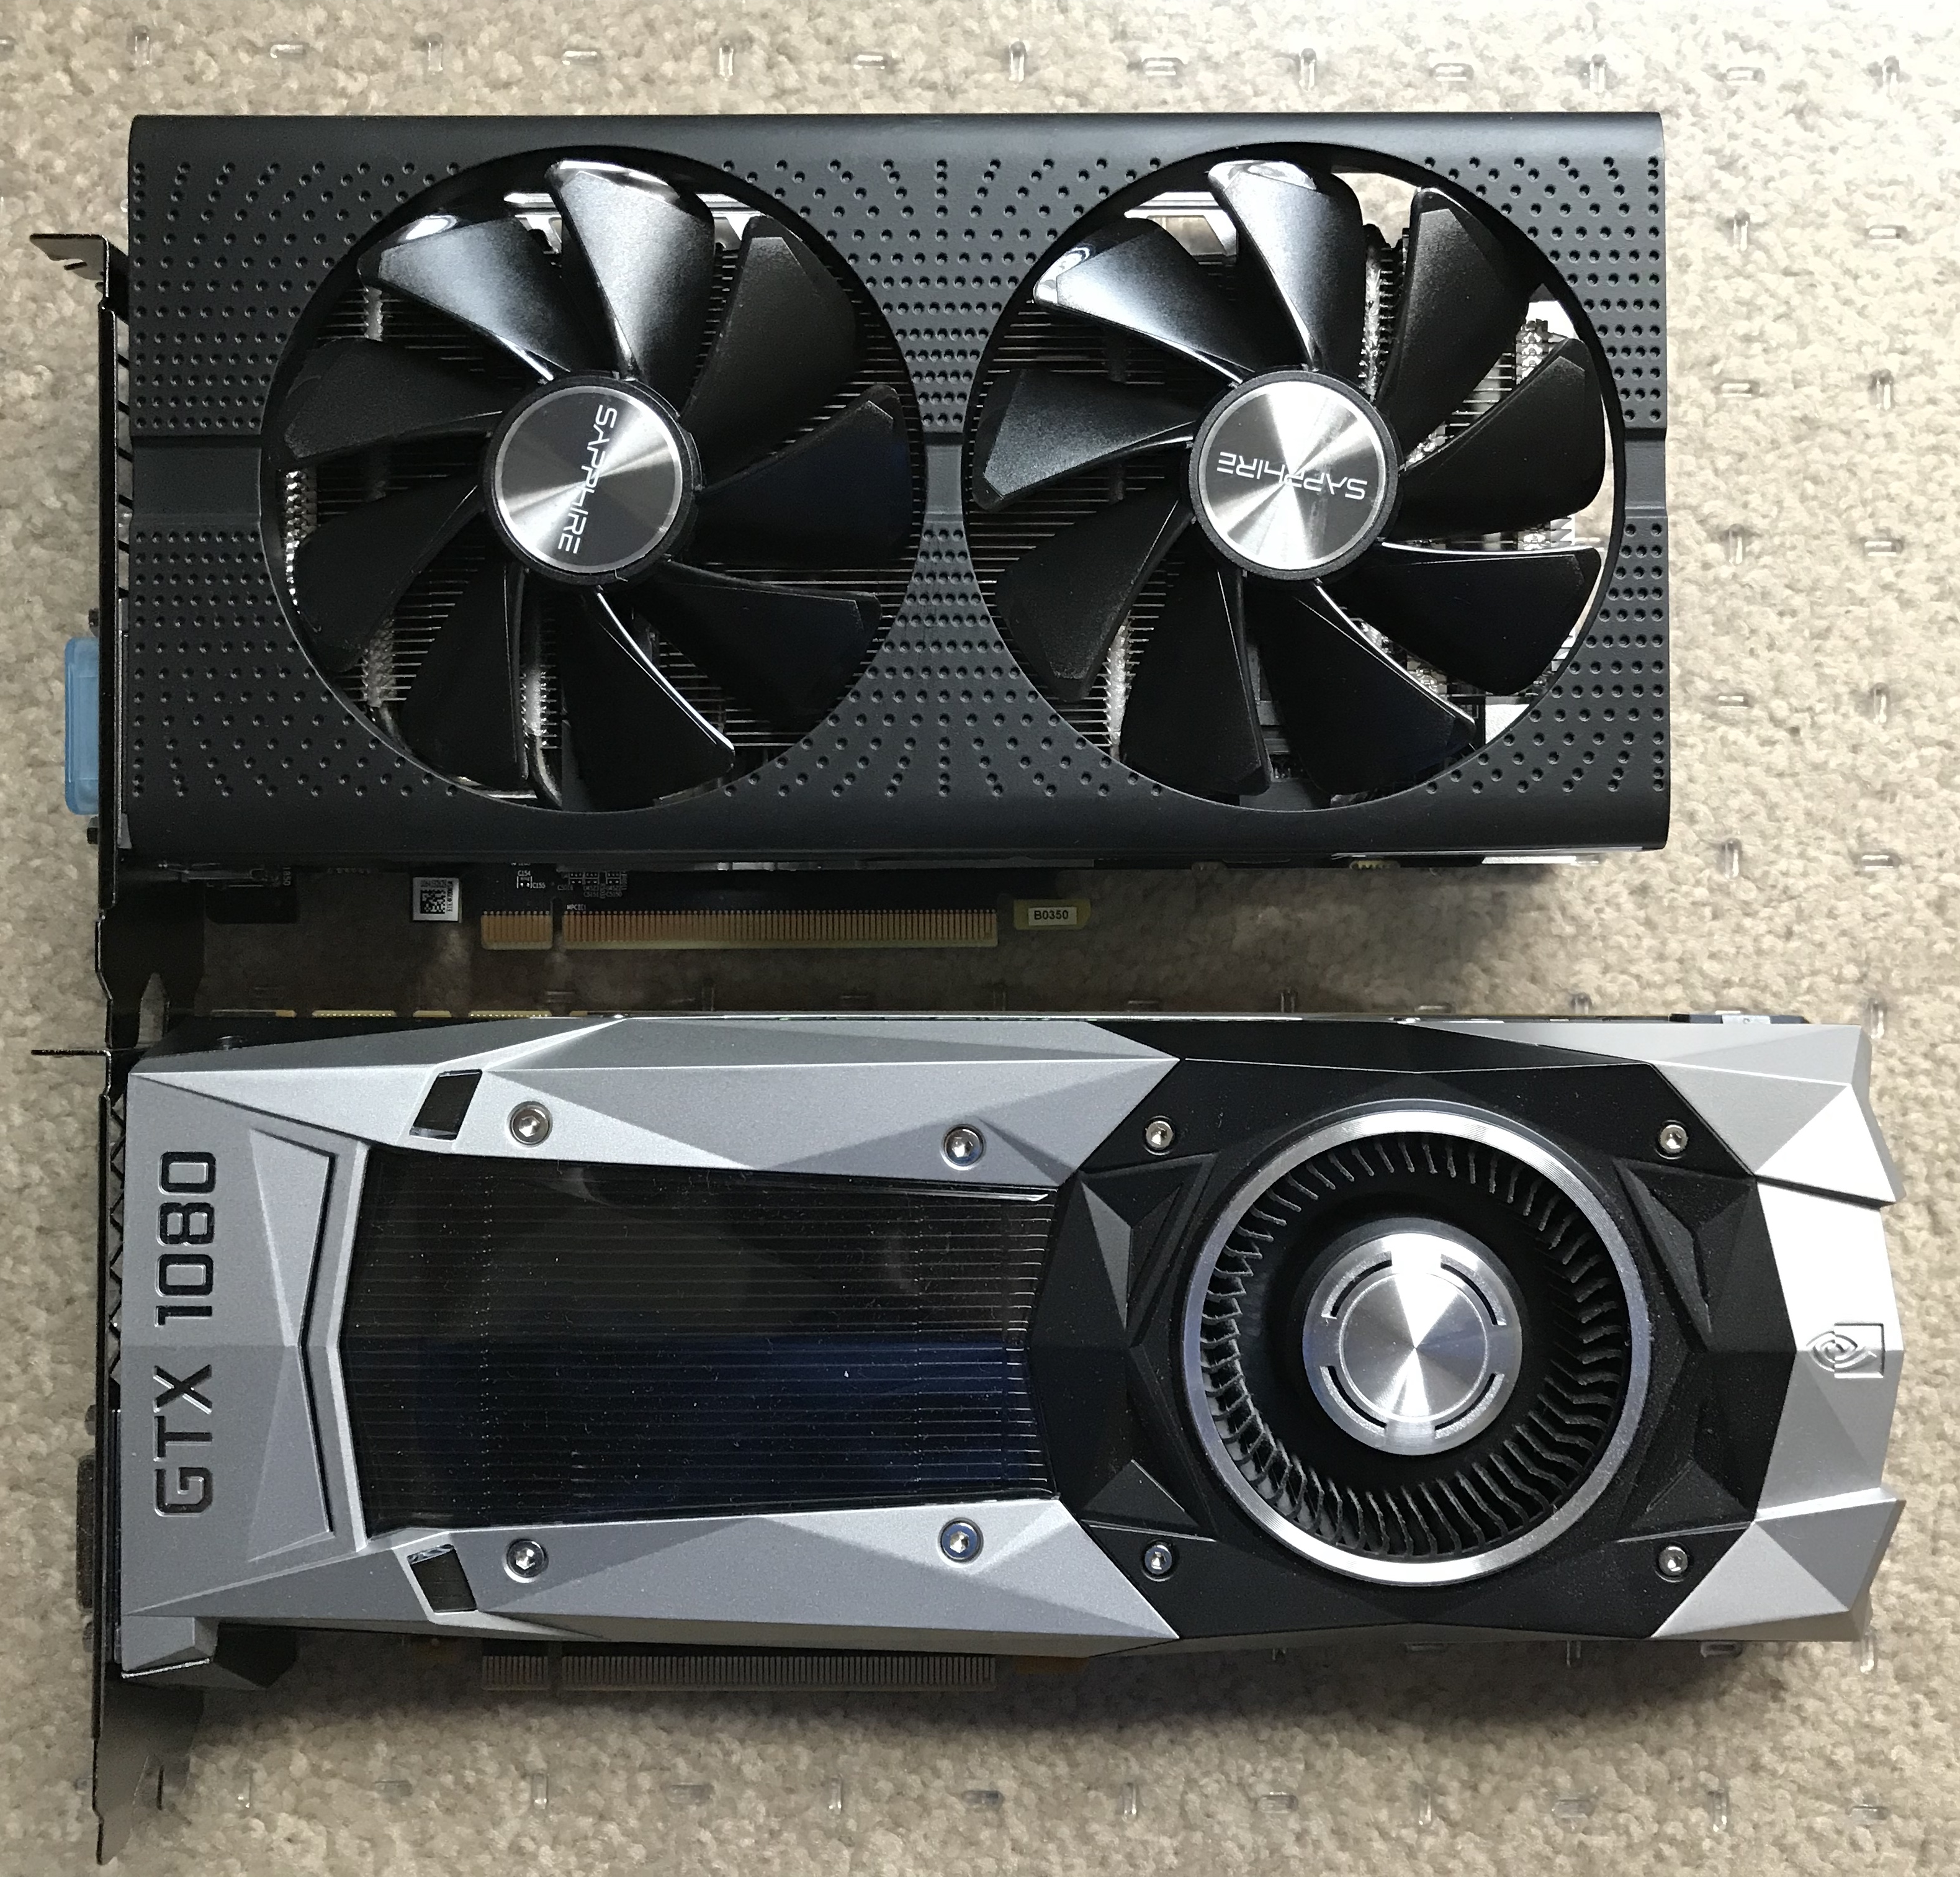 MP5,1 & Sapphire PULSE RX580 8GB - Spacer/Wedge for PCIe Slot 2